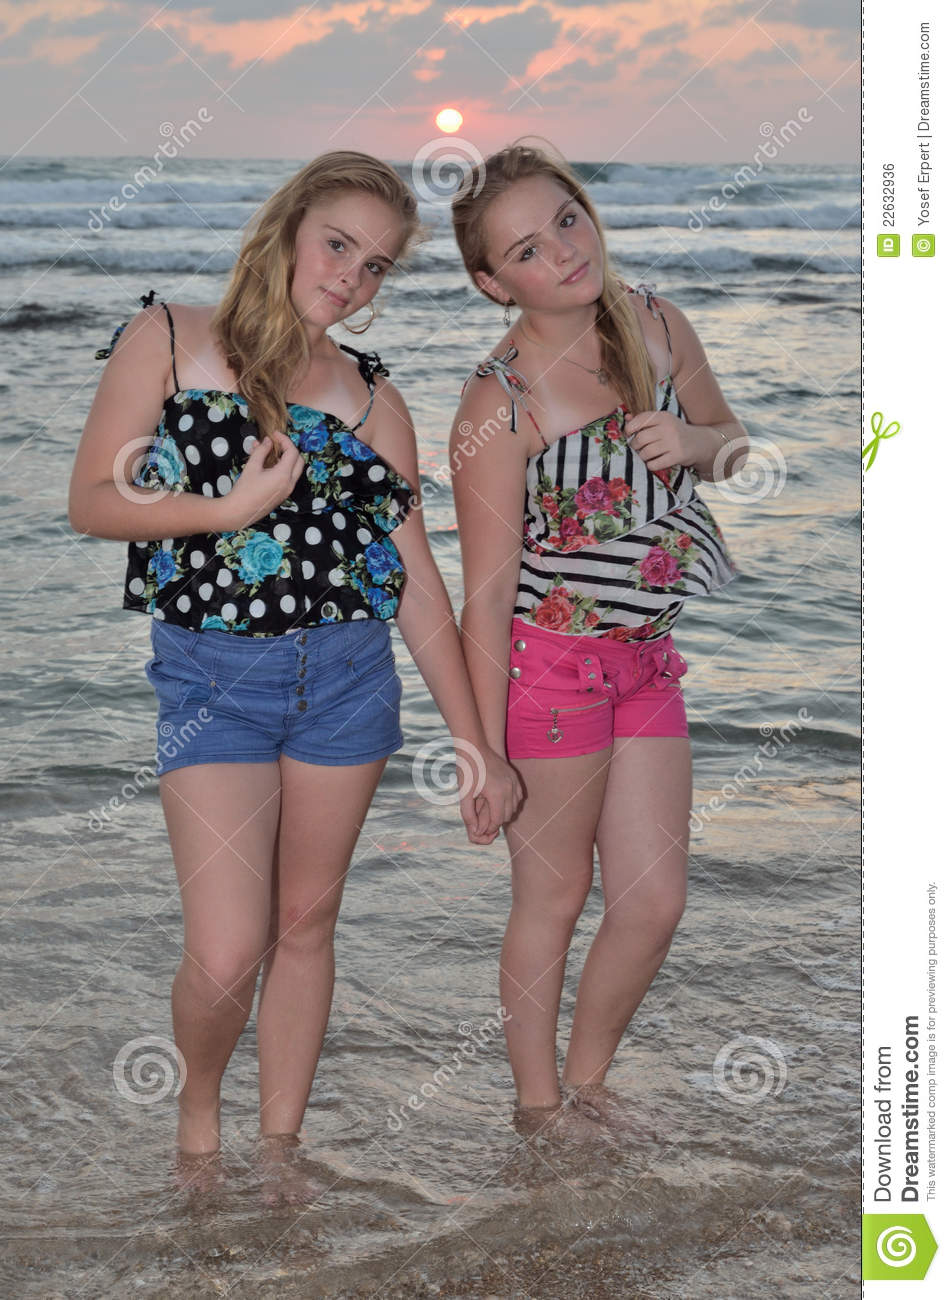 Blonde teen girls beach can recommend